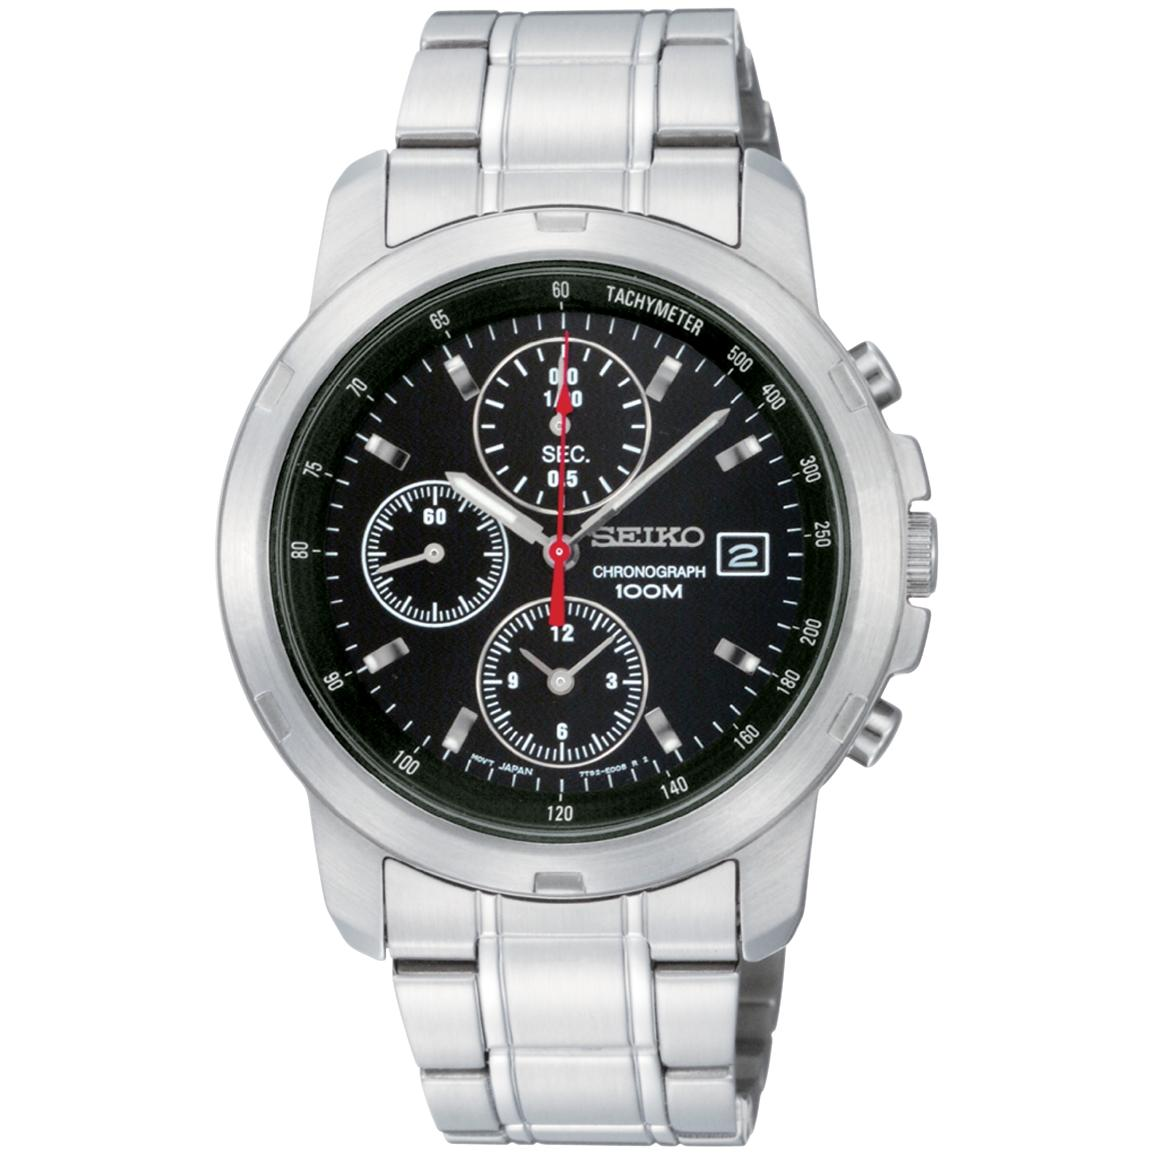 Seiko Chronograph Sports Men's Watch SNDB03P1